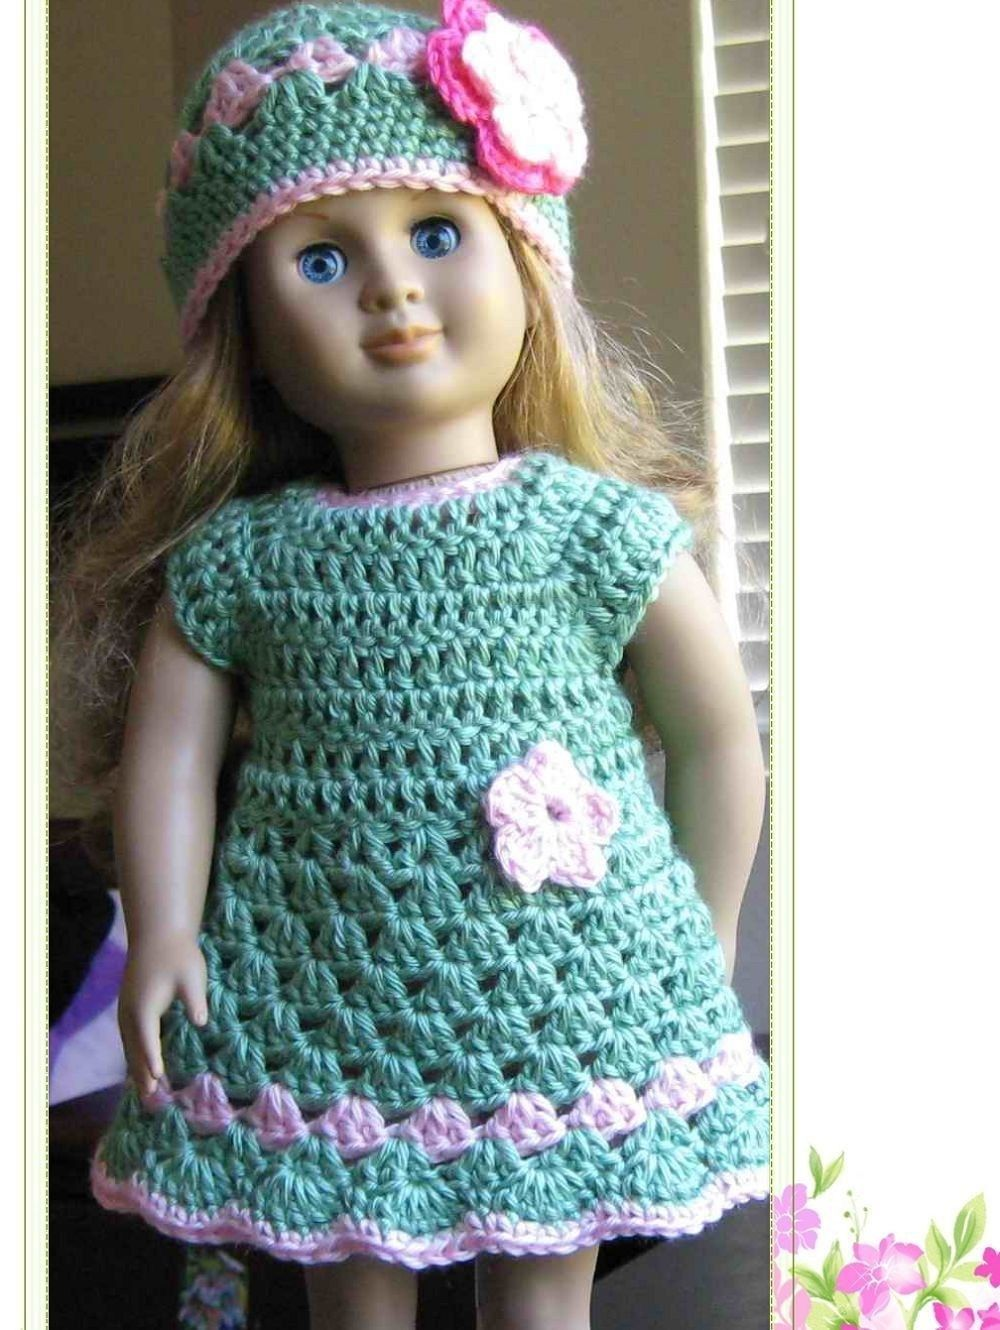 Free Crochet Patterns For 18 Inch Dolls Free Crochet American Doll Clothes Crochet Learn How To Crochet - crochetboxes.com